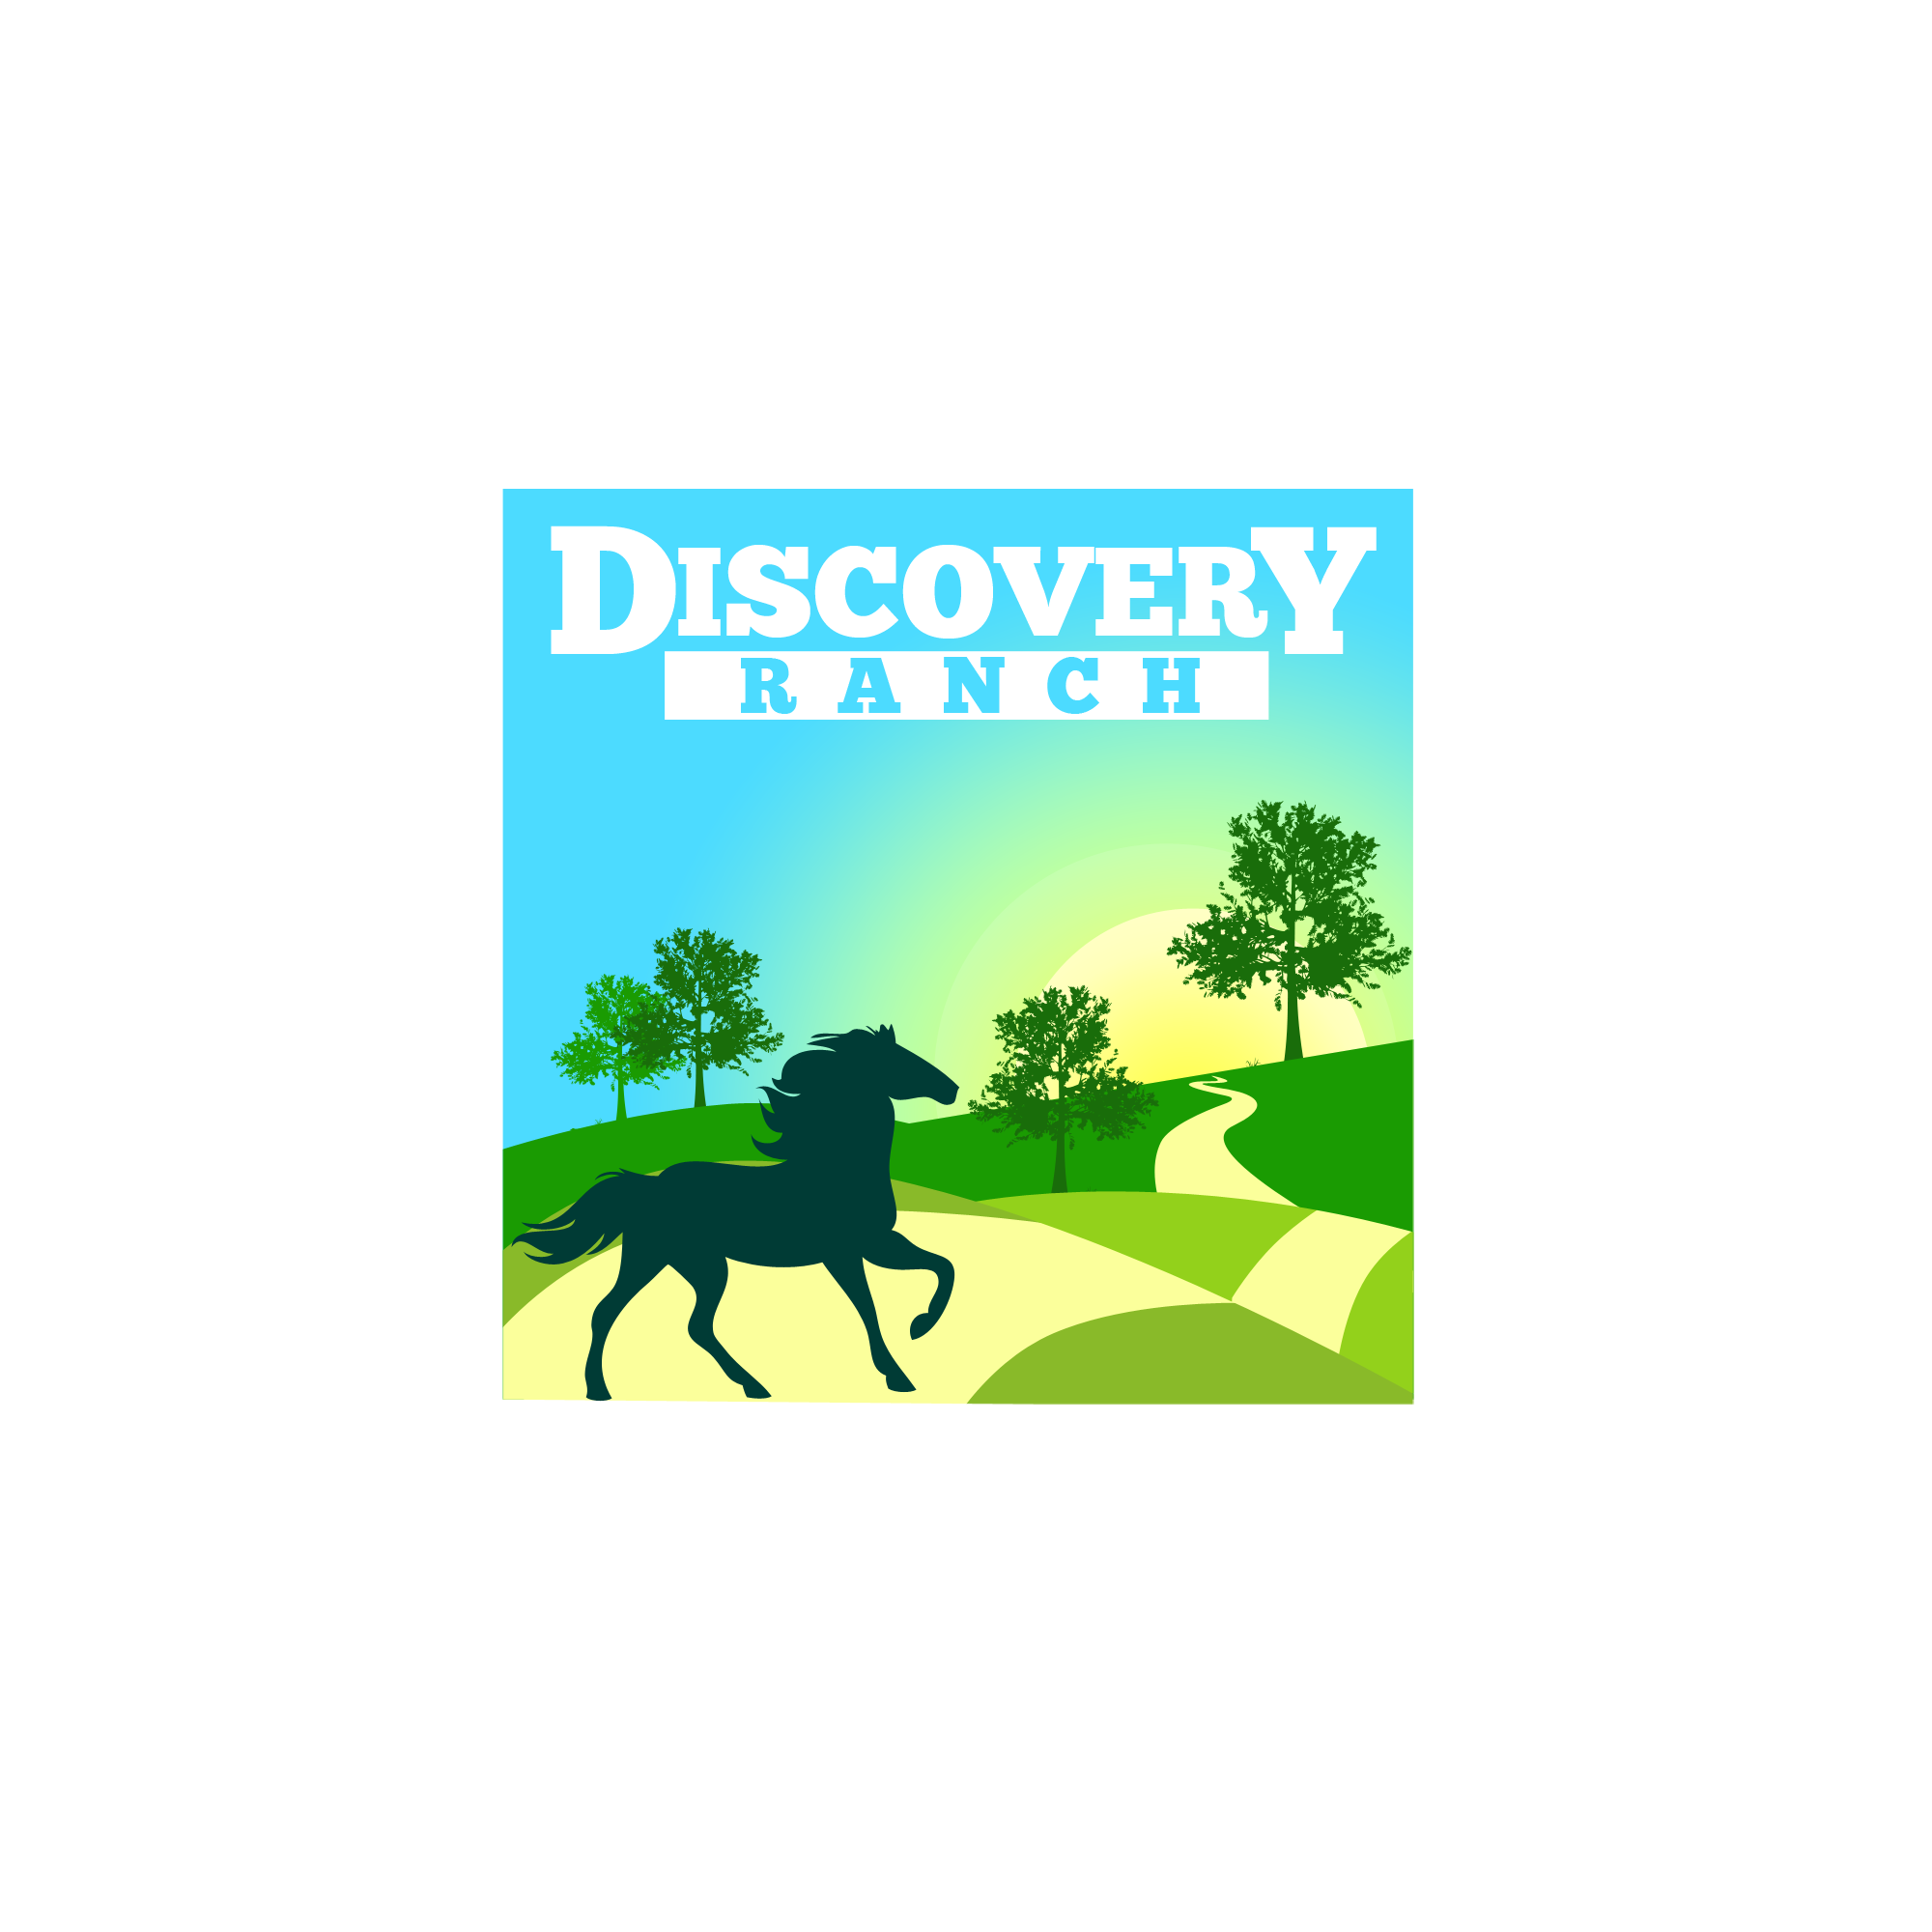 Logo Design by Kenneth Joel - Entry No. 124 in the Logo Design Contest Creative Logo Design for Discovery Ranch.